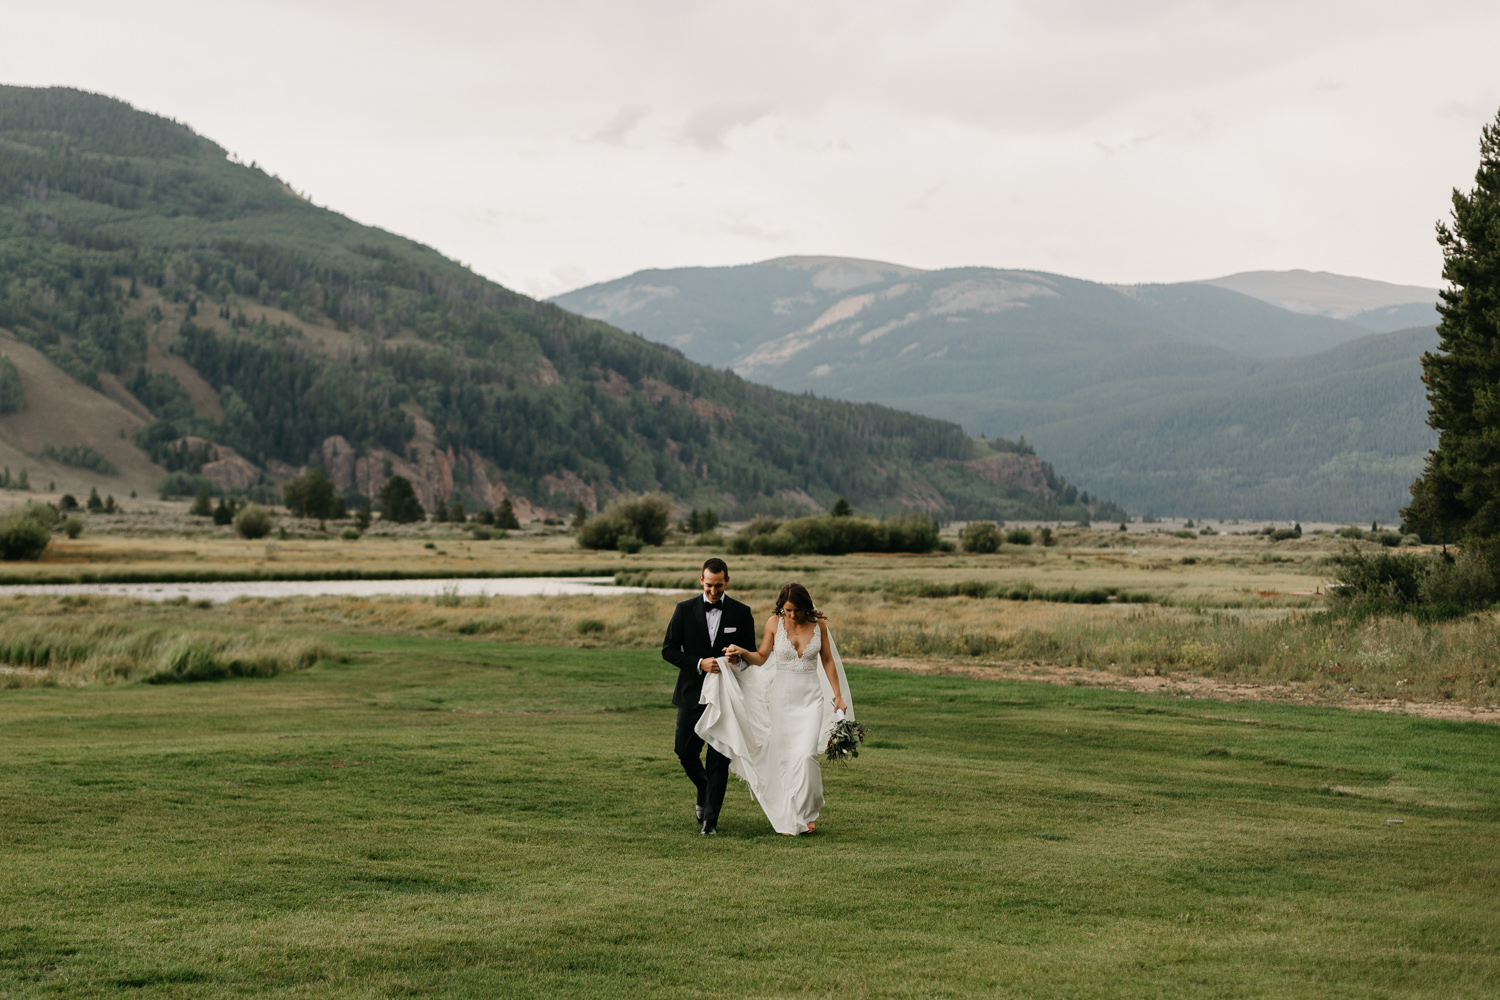 Colorado wedding photographer camp hale wedding-53.jpg